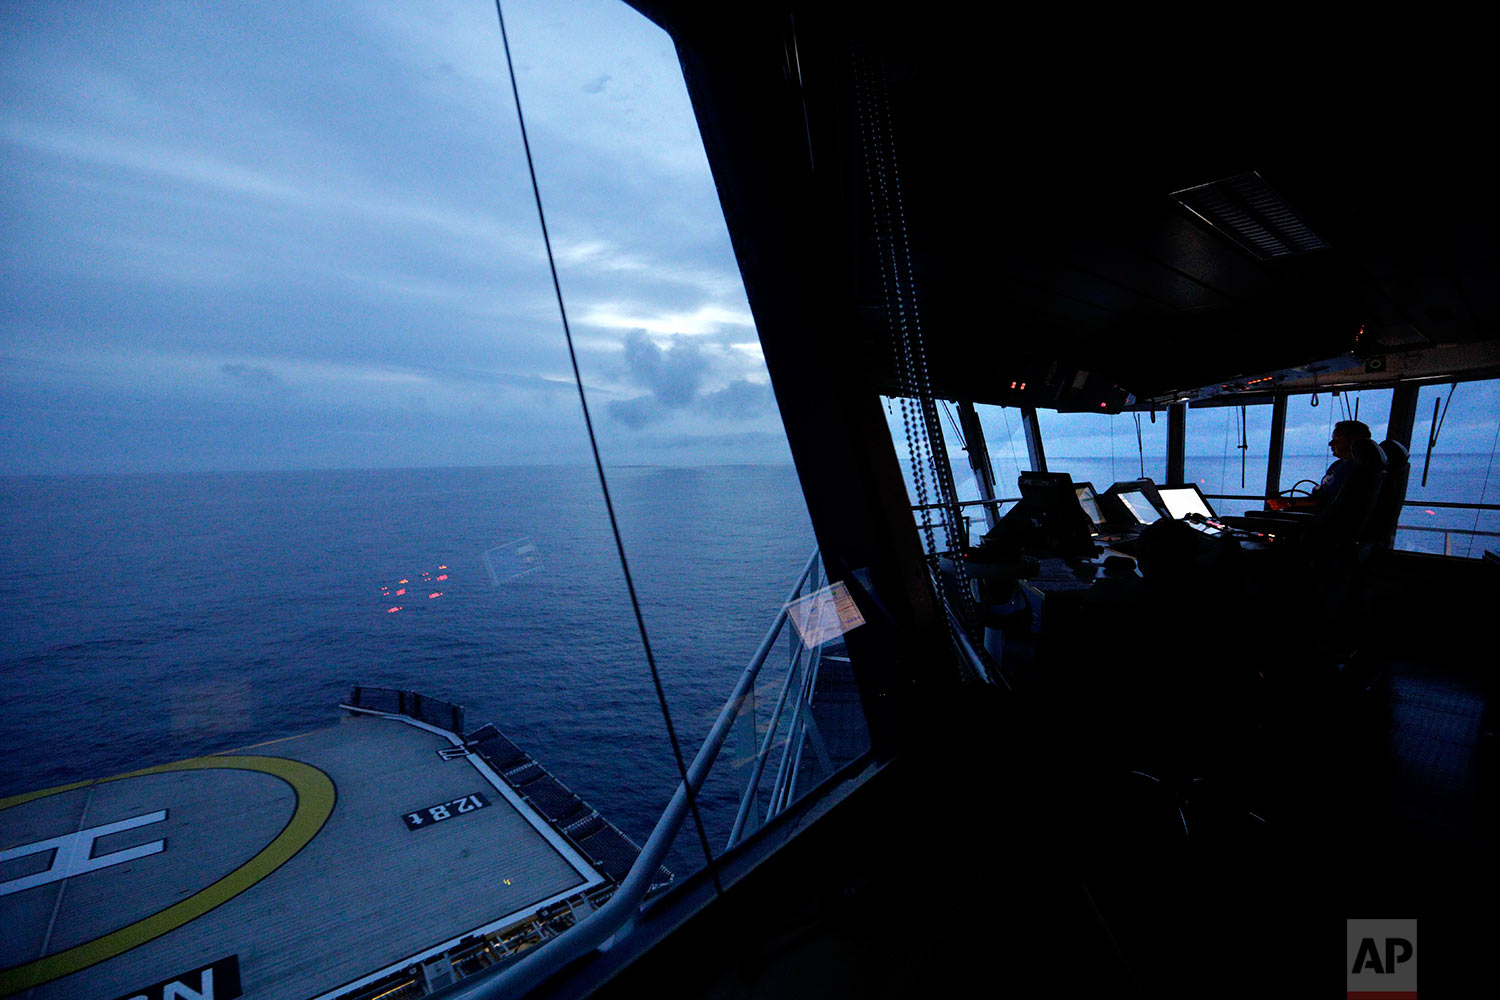 First officer Jukka Alhoke sits at the controls of the Finnish icebreaker MSV Nordica as it sets sail off the coast of Canada toward the Bering Strait, Thursday, July 6, 2017. The MSV Nordica is setting course to traverse the Northwest Passage, a route once considered impassible, from the Pacific ocean to the Atlantic via the Arctic. The icebreaker, which is returning to its home port of Helsinki, is carrying researchers studying the impact of the Arctic's melting sea ice on the fragile social and ecological balance in the region, and observers from the U.S. and Canadian Coast Guards. (AP Photo/David Goldman)